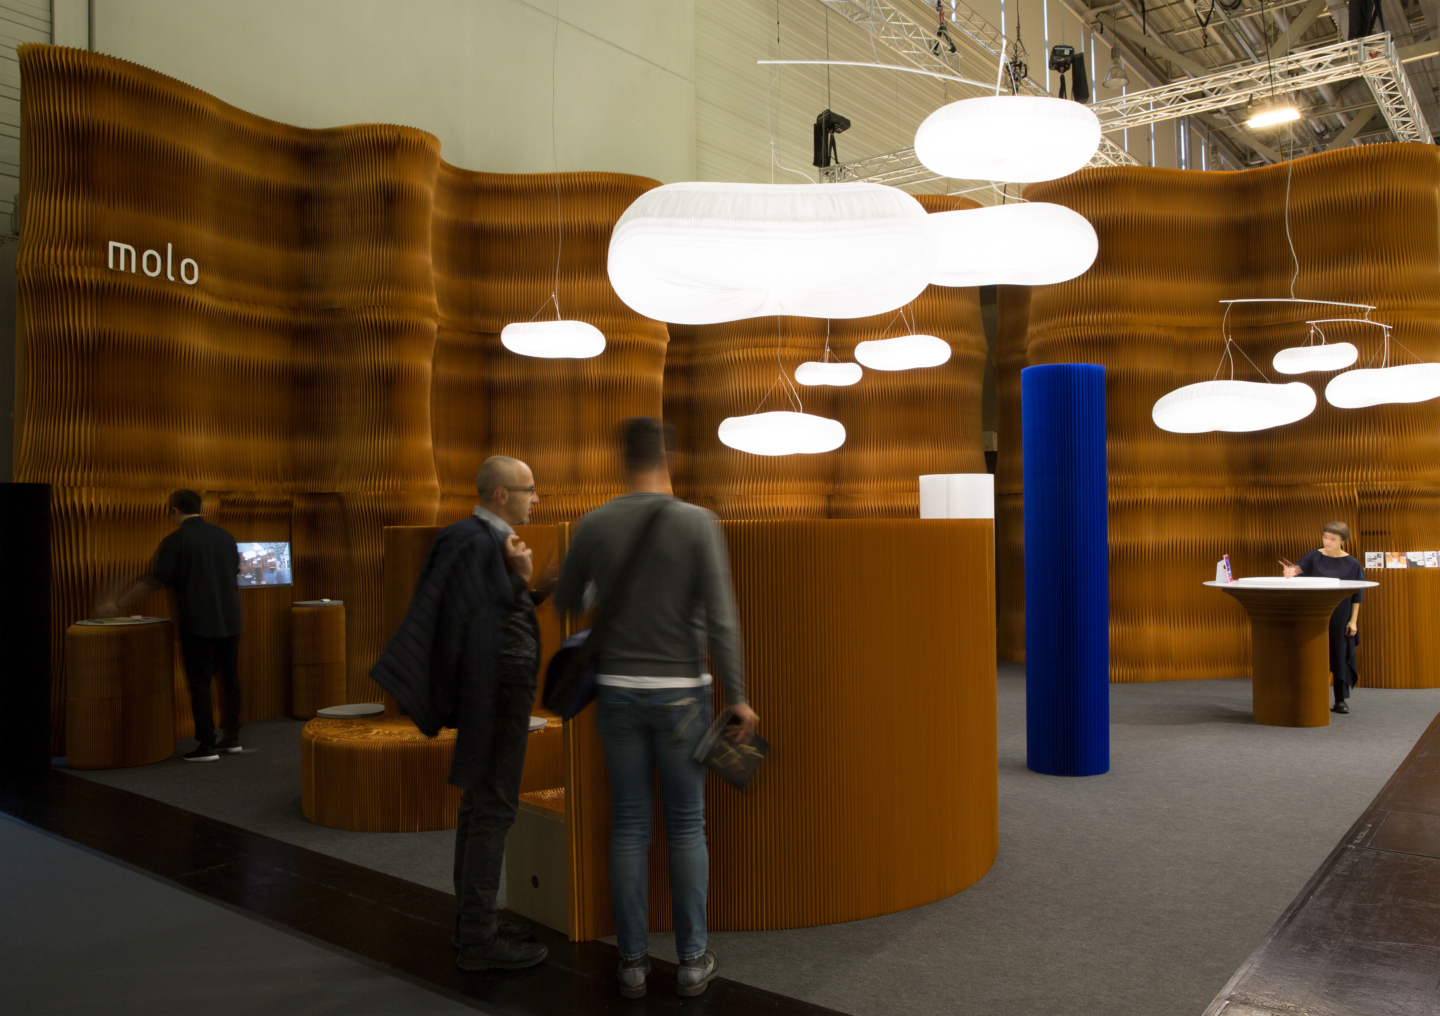 cloud mast soft lighting and accordion wall partition by molo - orgatec exhibit 2018